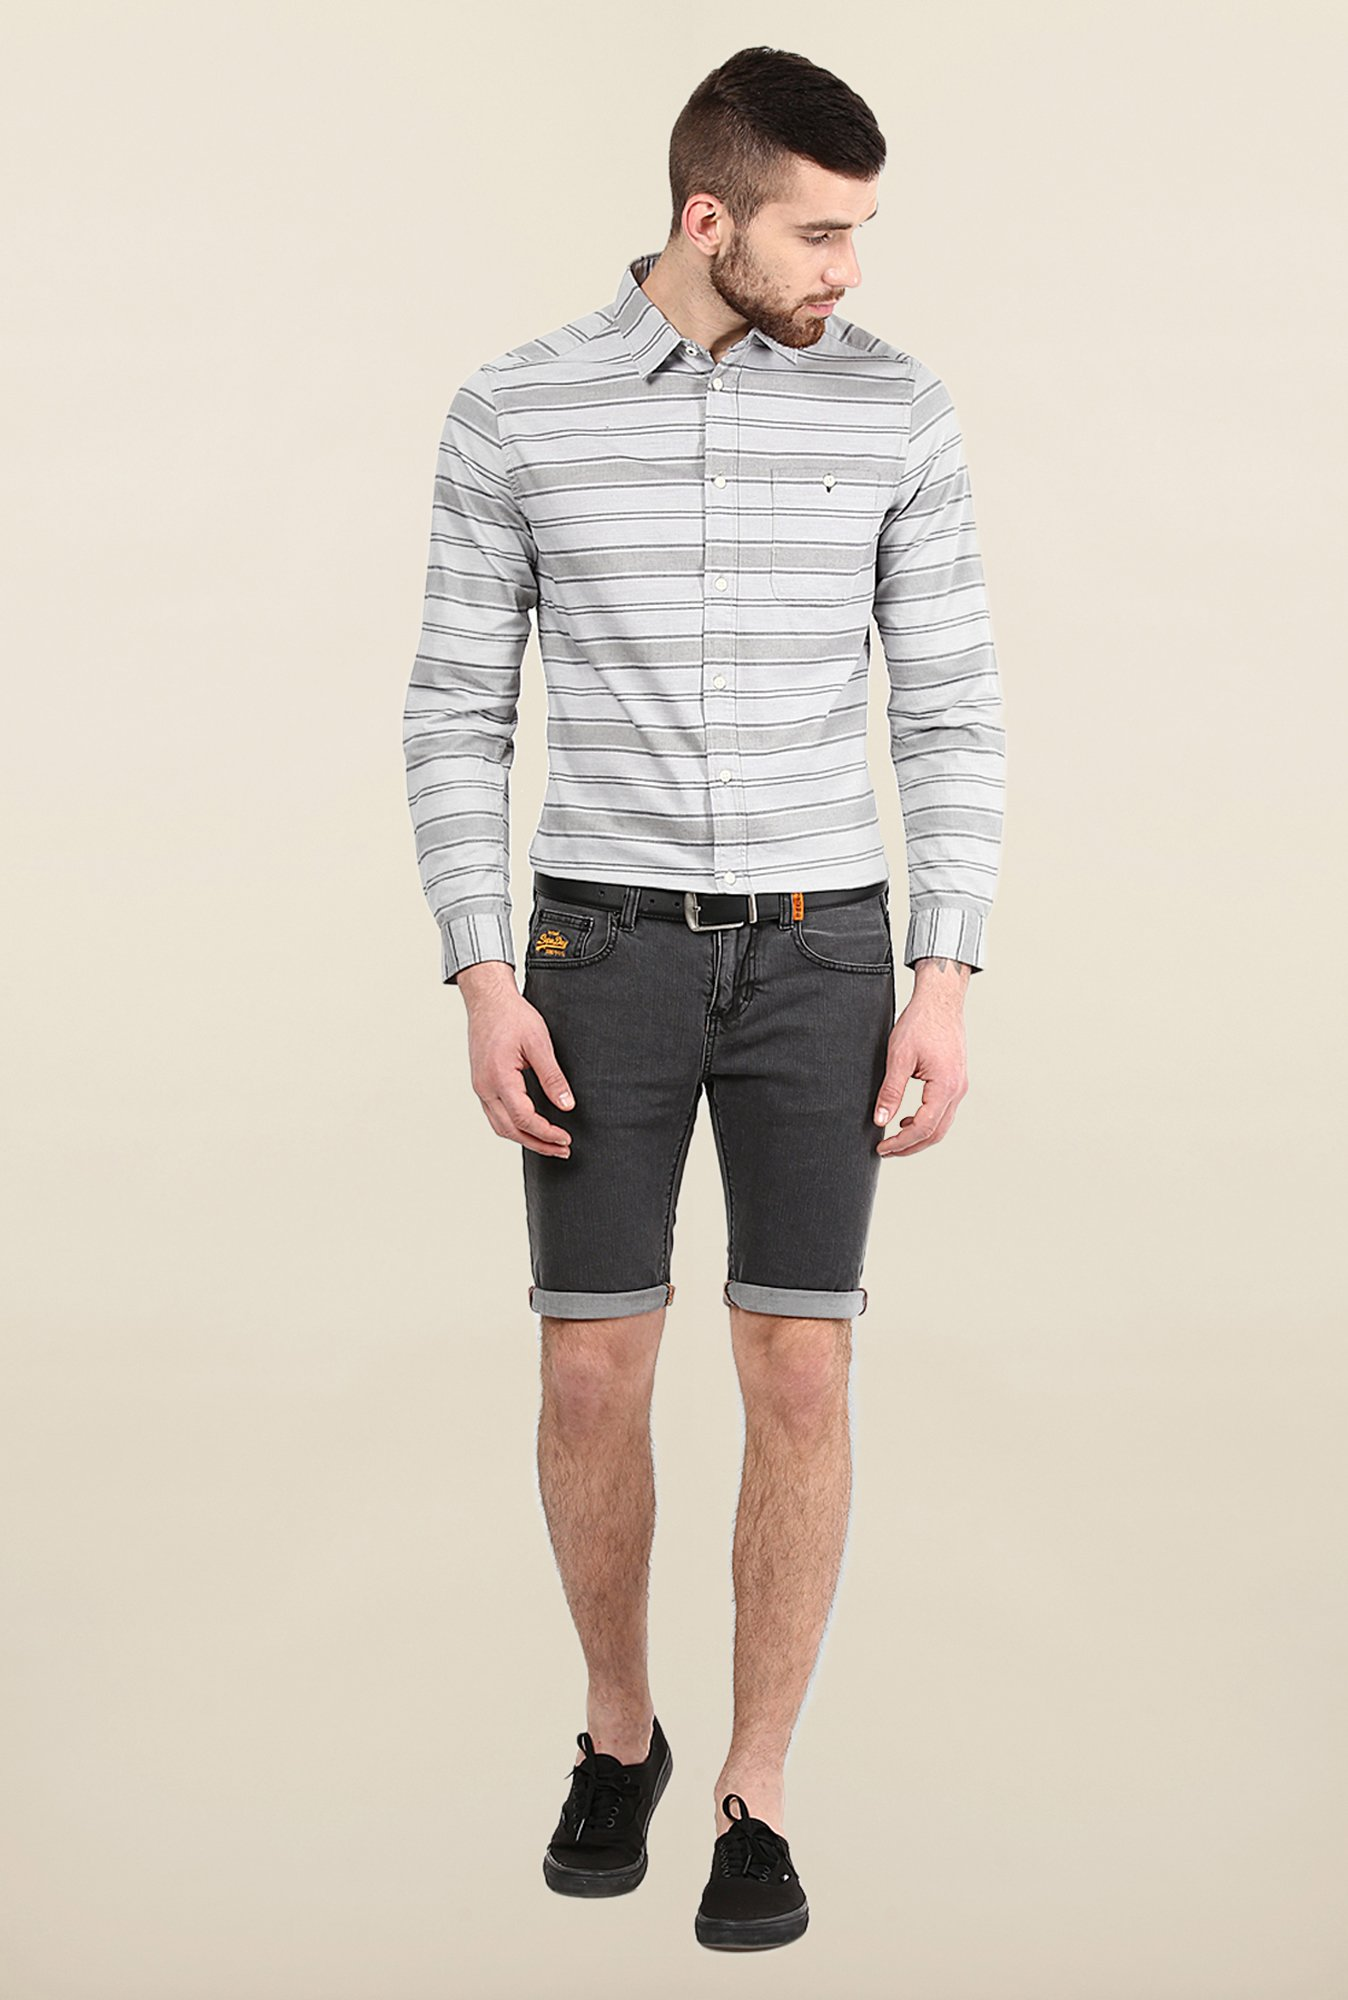 Jack & Jones Grey Striped Casual Shirt